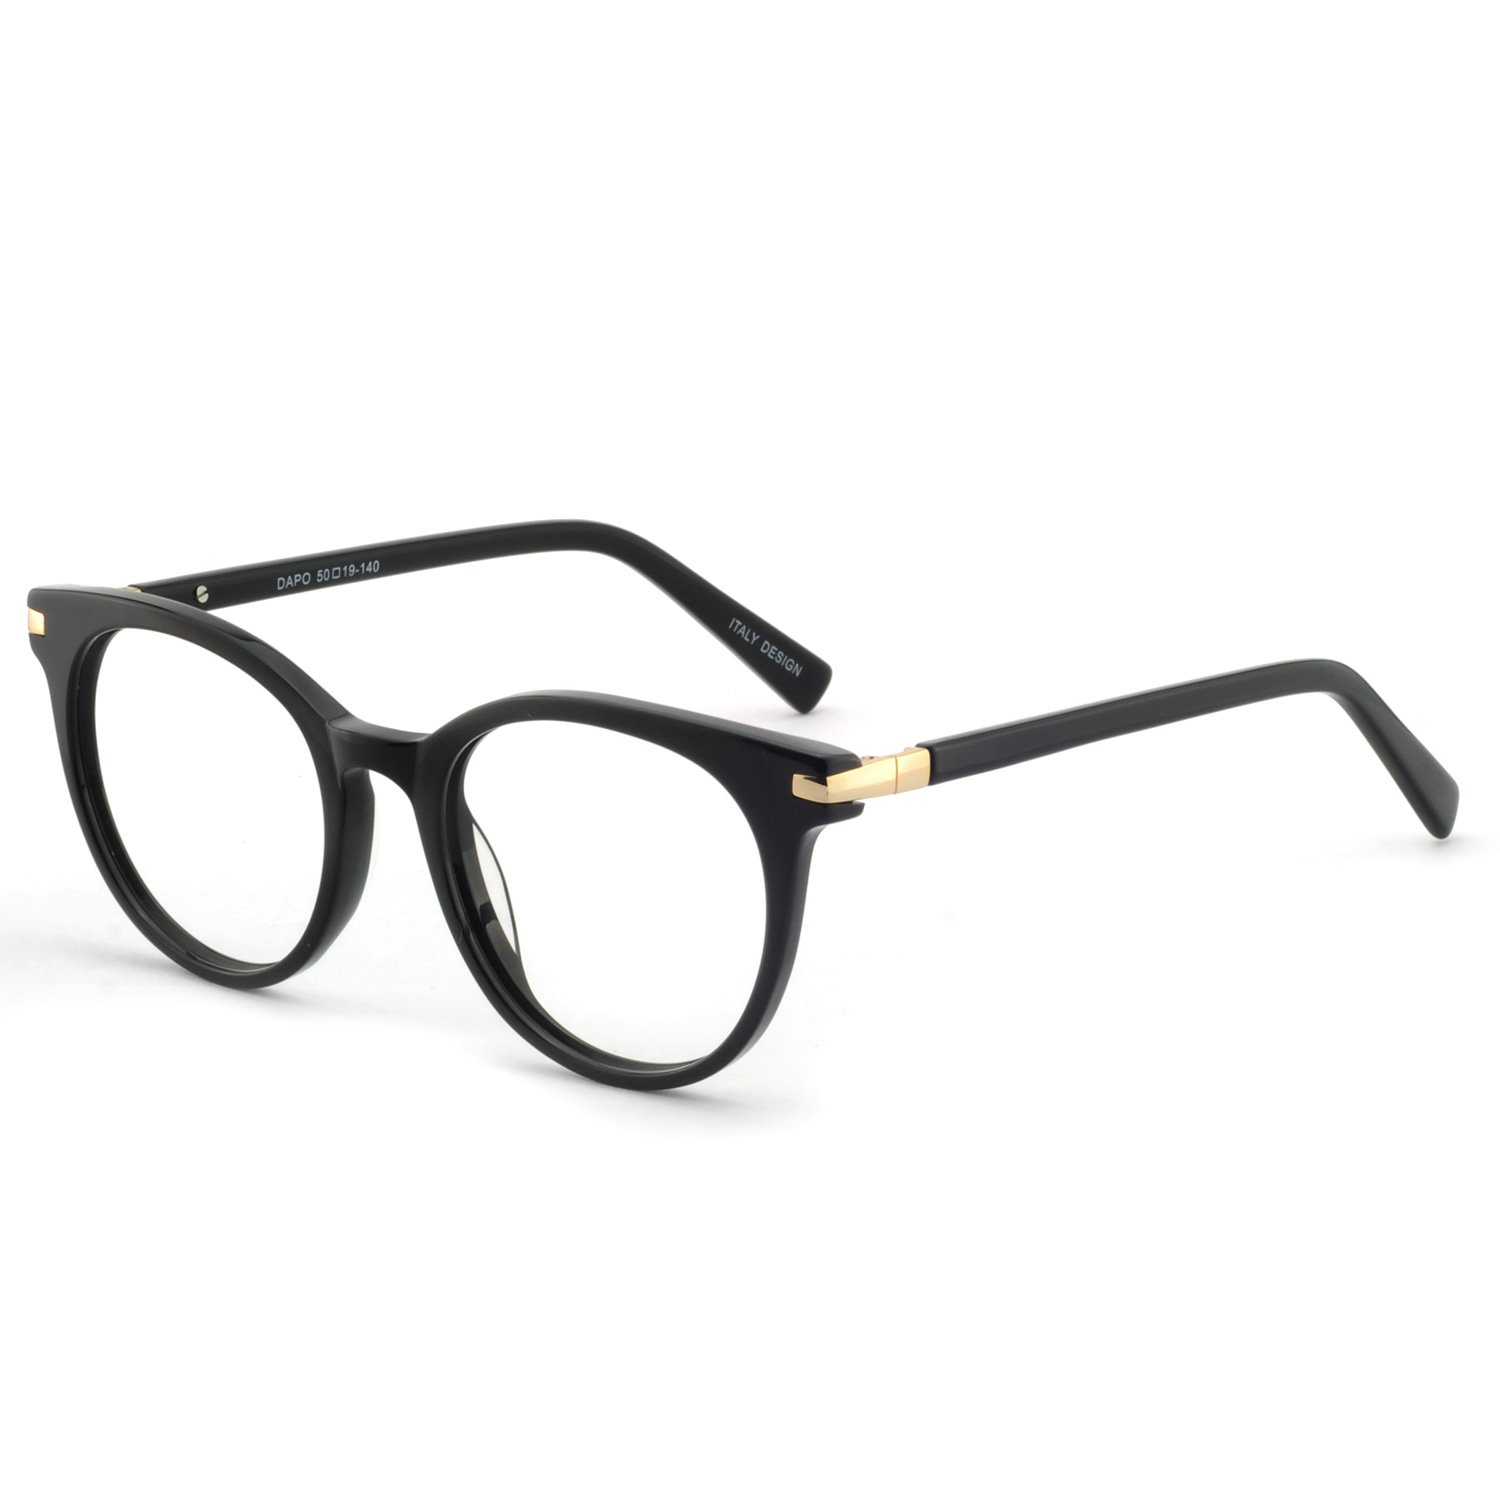 Black gold OCCI bluee Light Blocking Glasses for Computer Use Anti Eyestrain UV Filter Lens Women Frame Eyeglasses